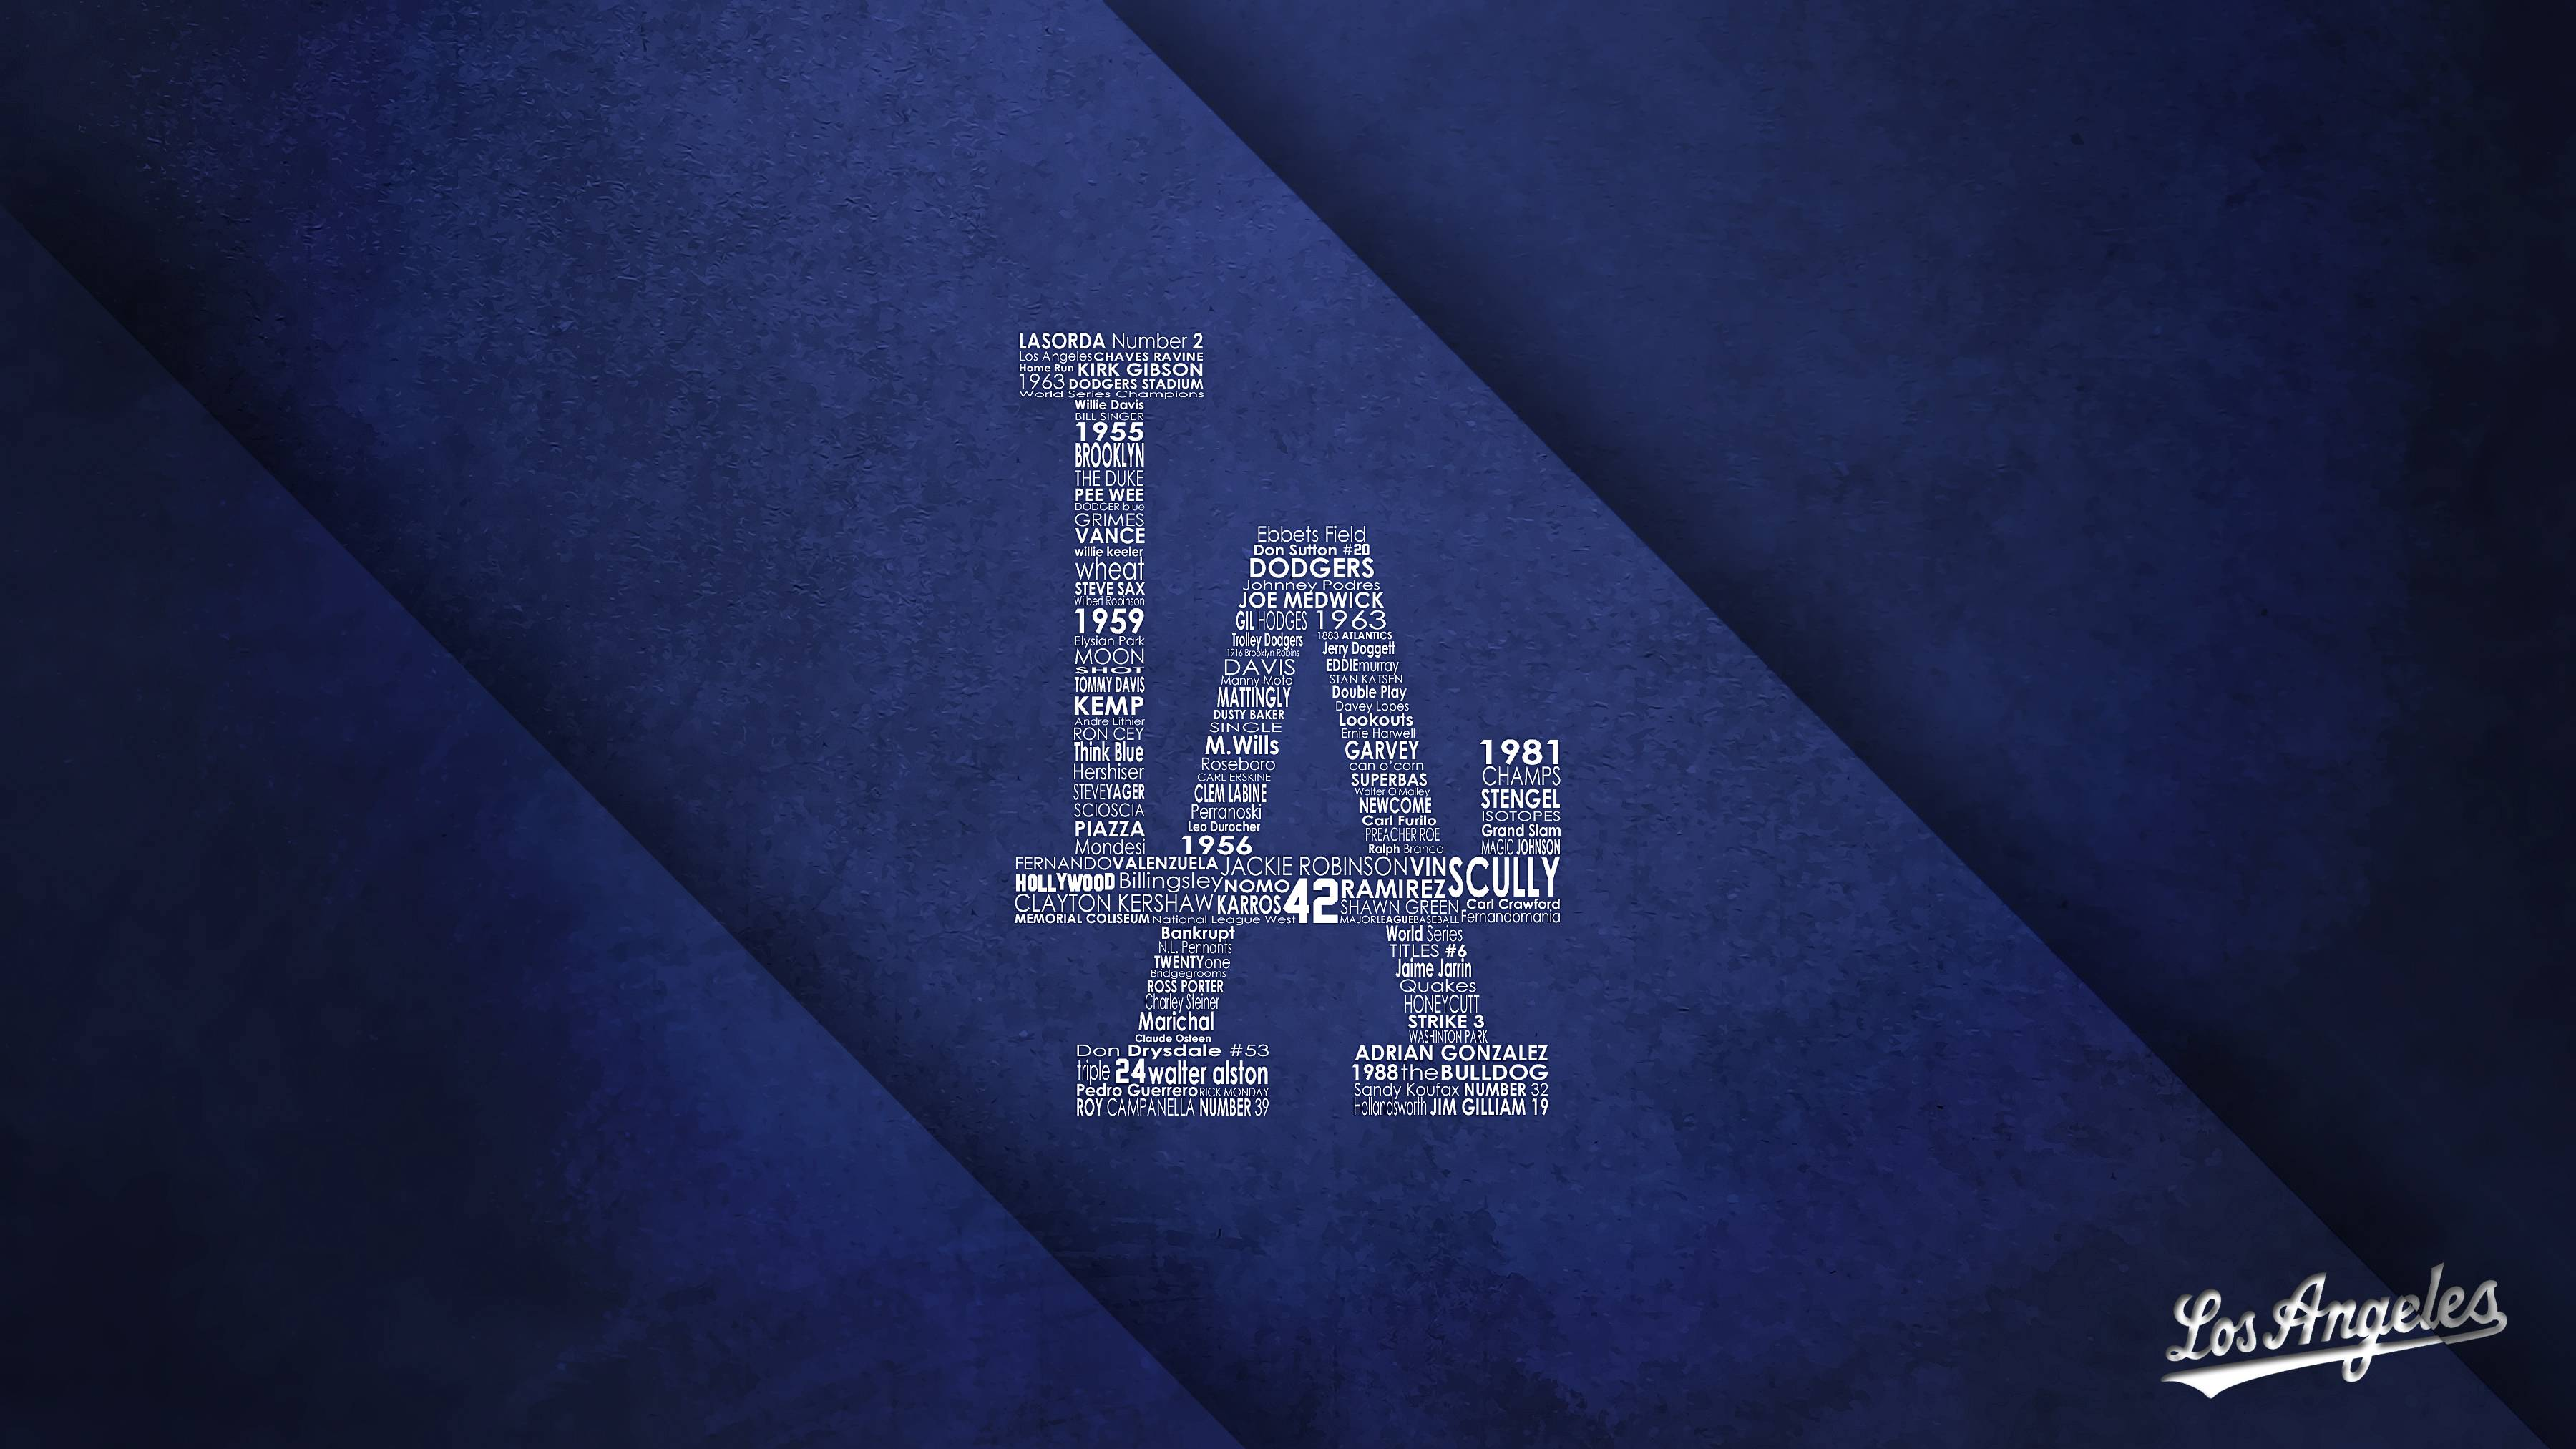 L.A. Dodgers Wallpaper